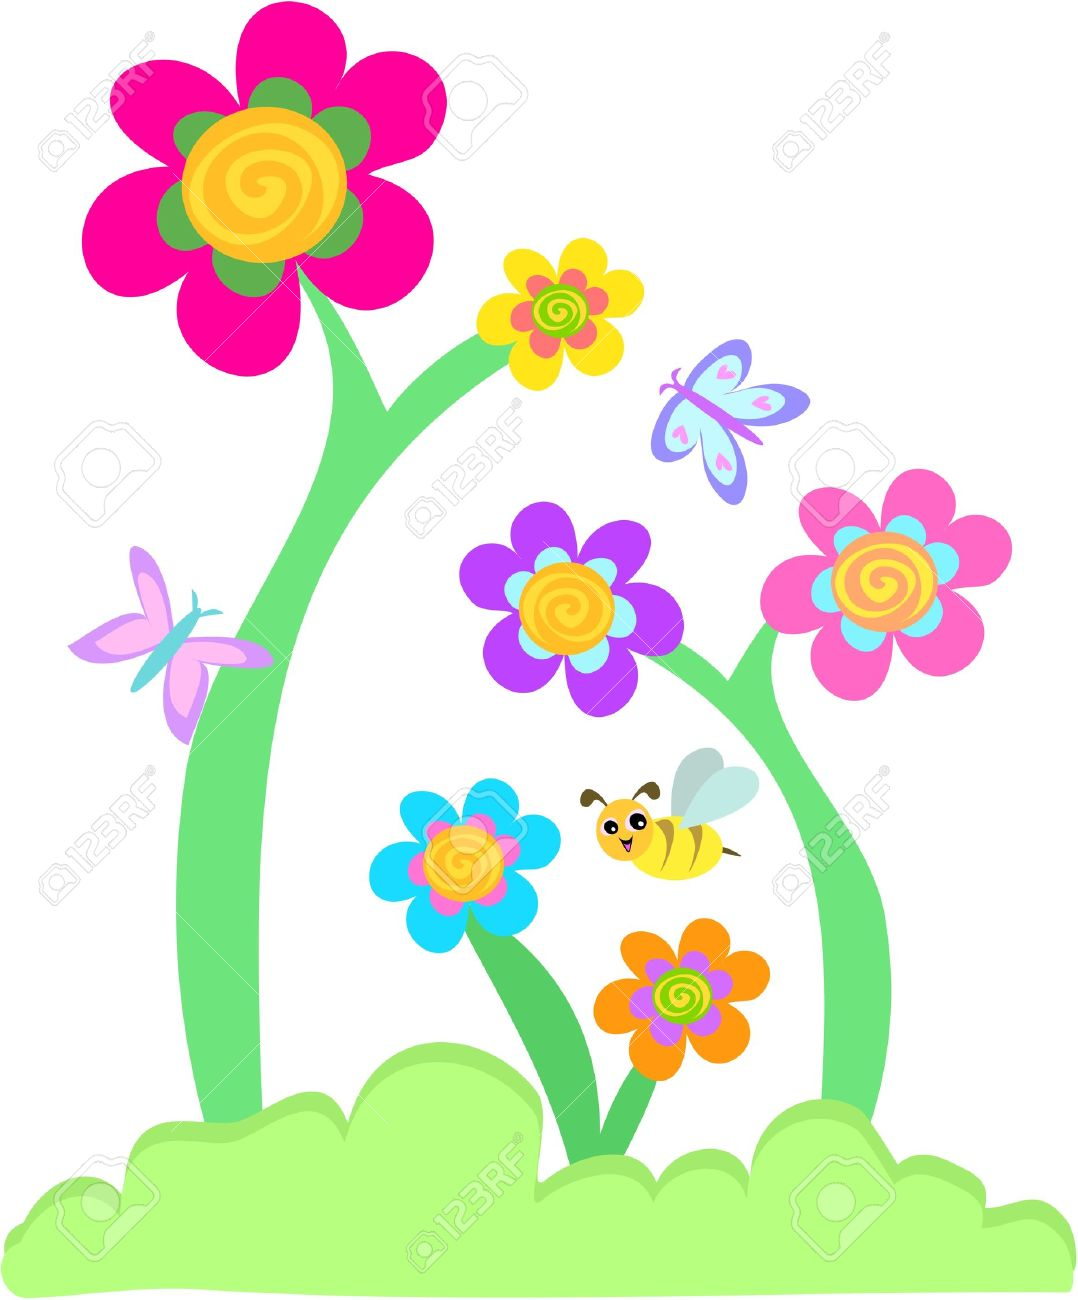 whimsical flower garden with butterflies and bee royalty free rh 123rf com flower garden clip art black and white flower garden clip art images